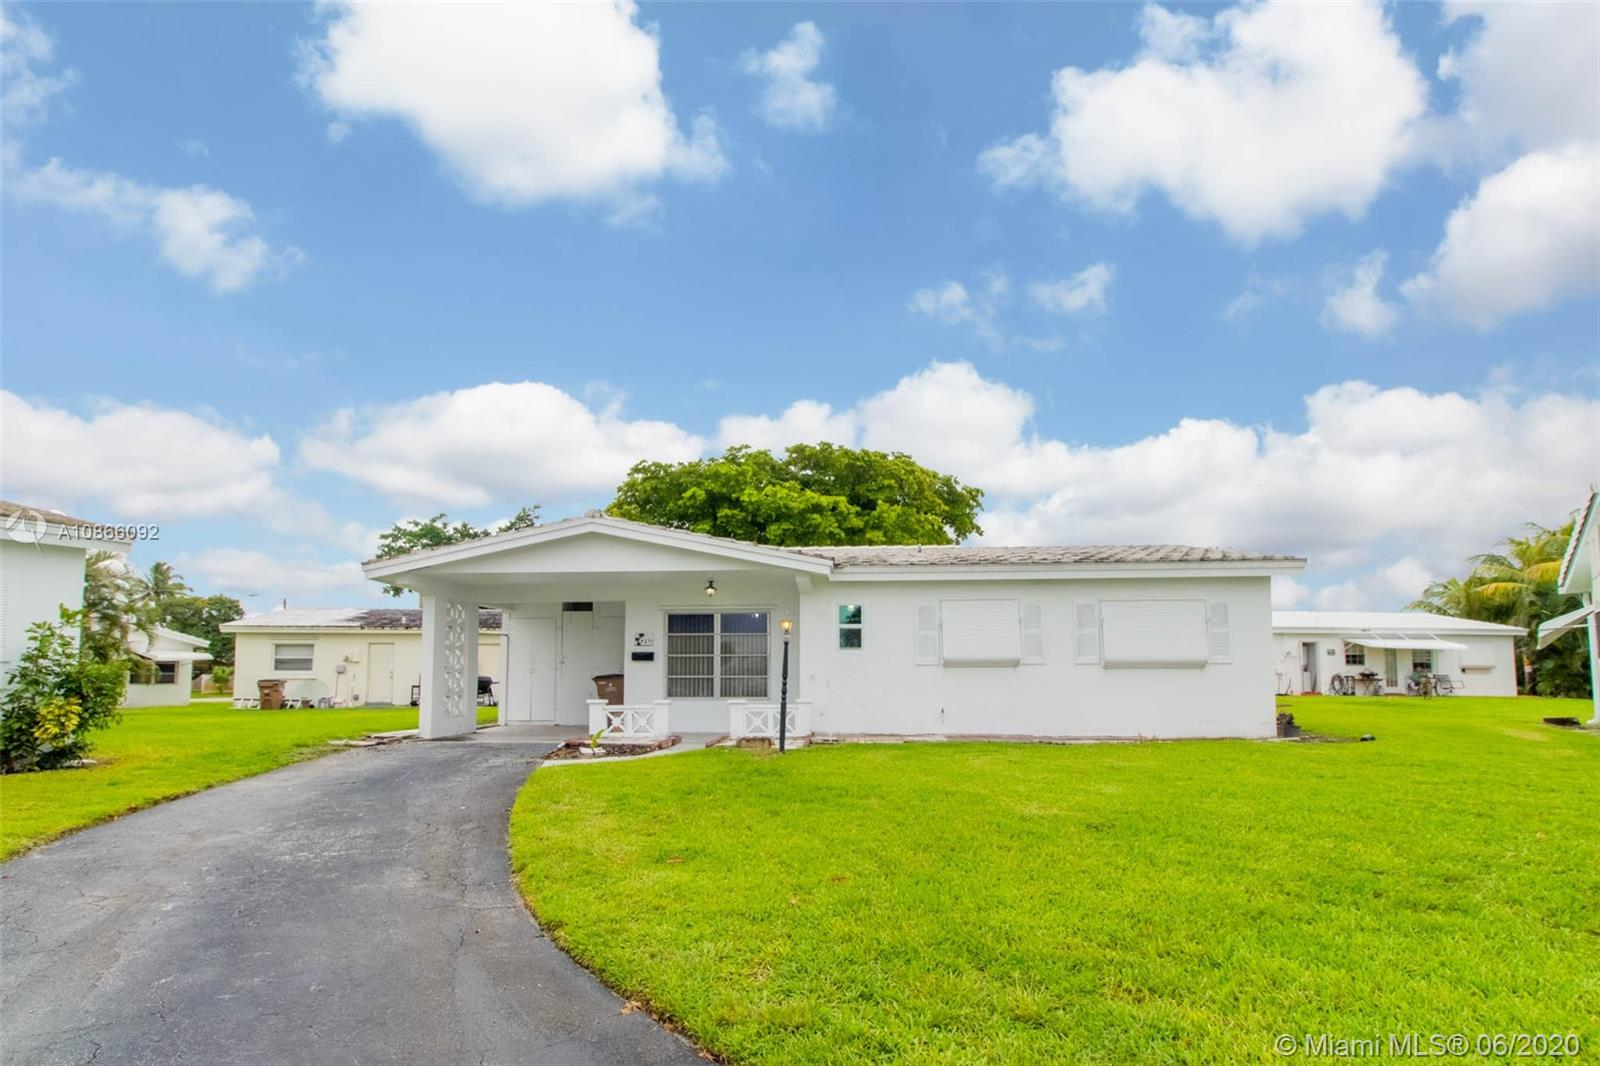 4271 NW 1st Ter Property Photo - Deerfield Beach, FL real estate listing